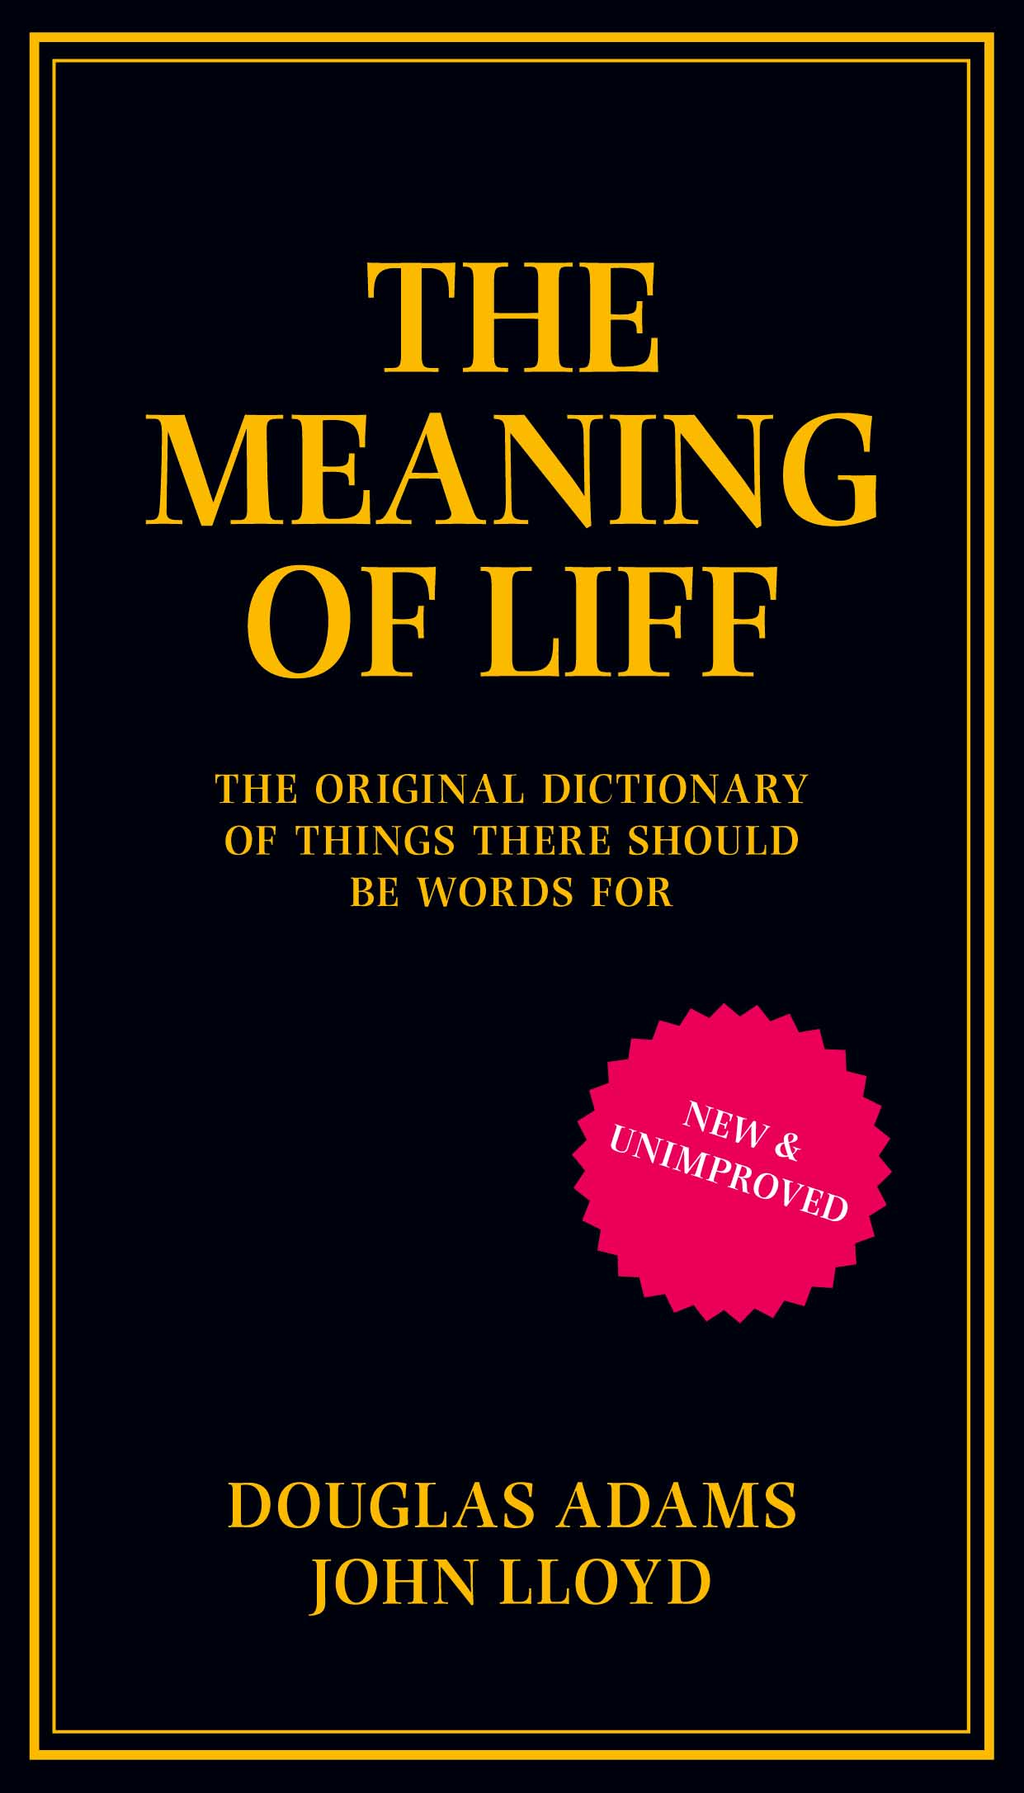 Meaning of Liff The Original Dictionary Of Things There Should Be Words For